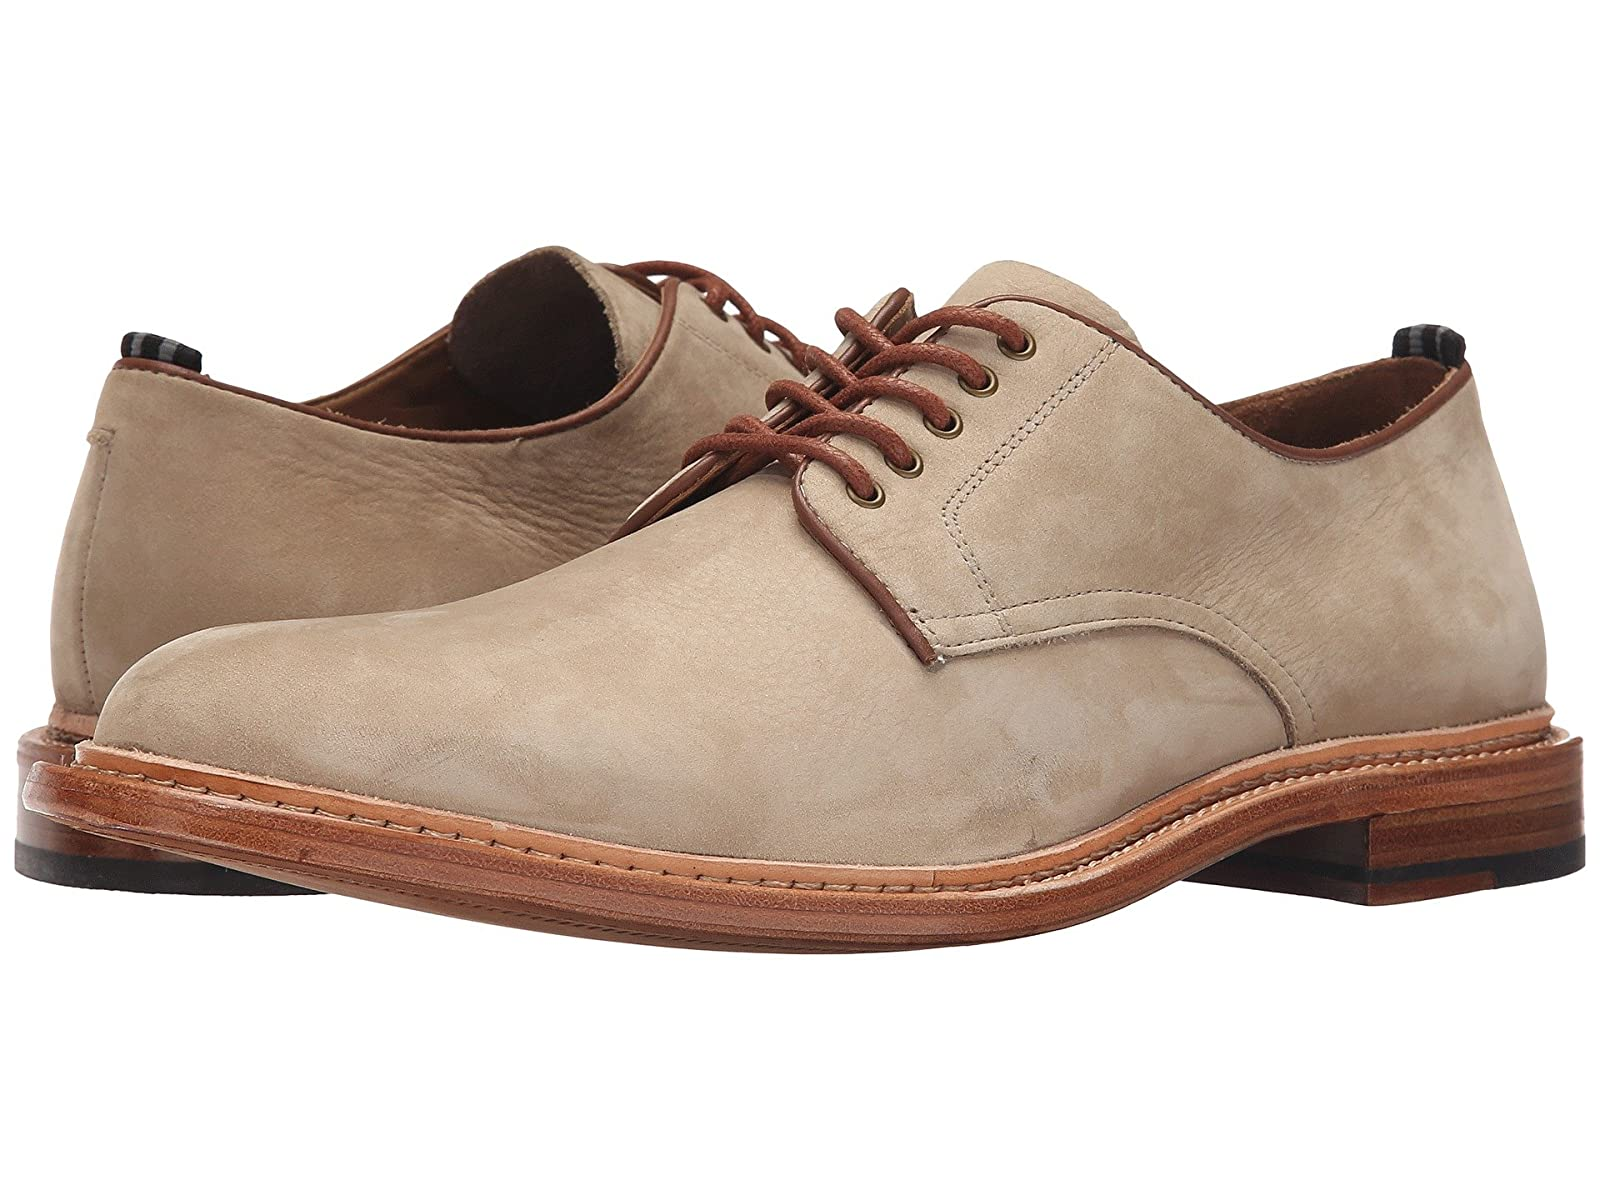 Cole Haan Willet Plain OxfordCheap and distinctive eye-catching shoes